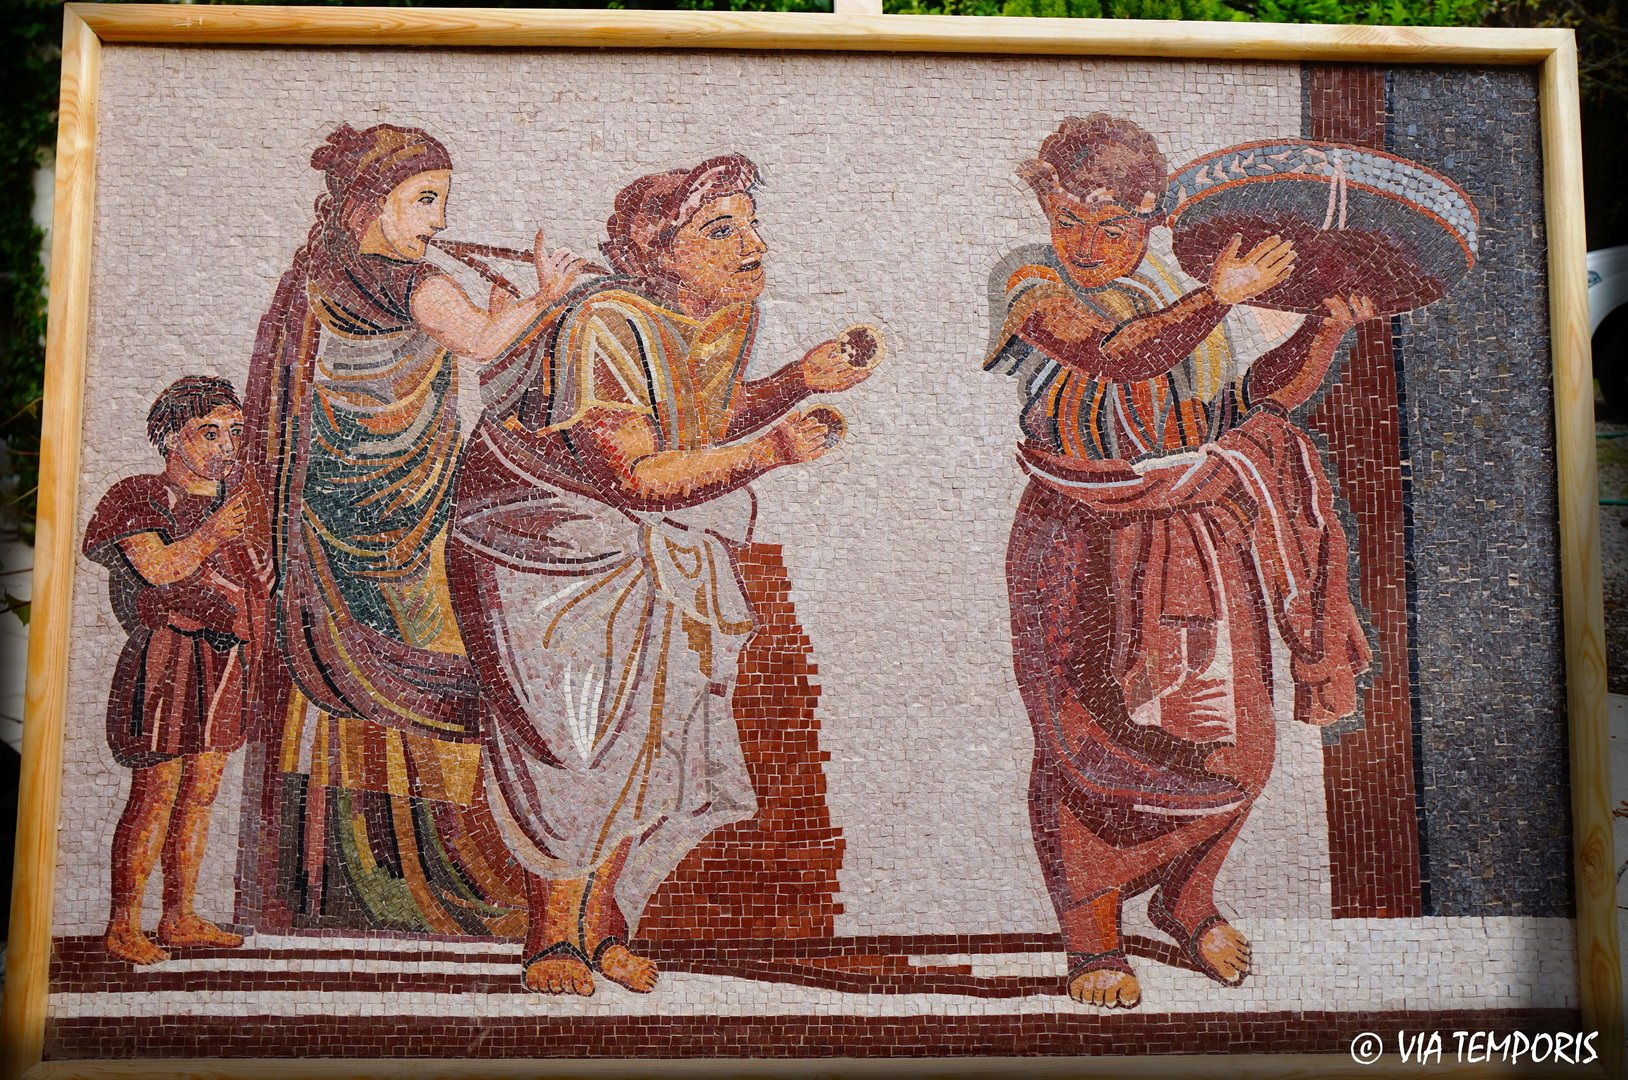 ROMAN MOSAIC - MOSAIC WITH MUSICIANS OF POMPEI